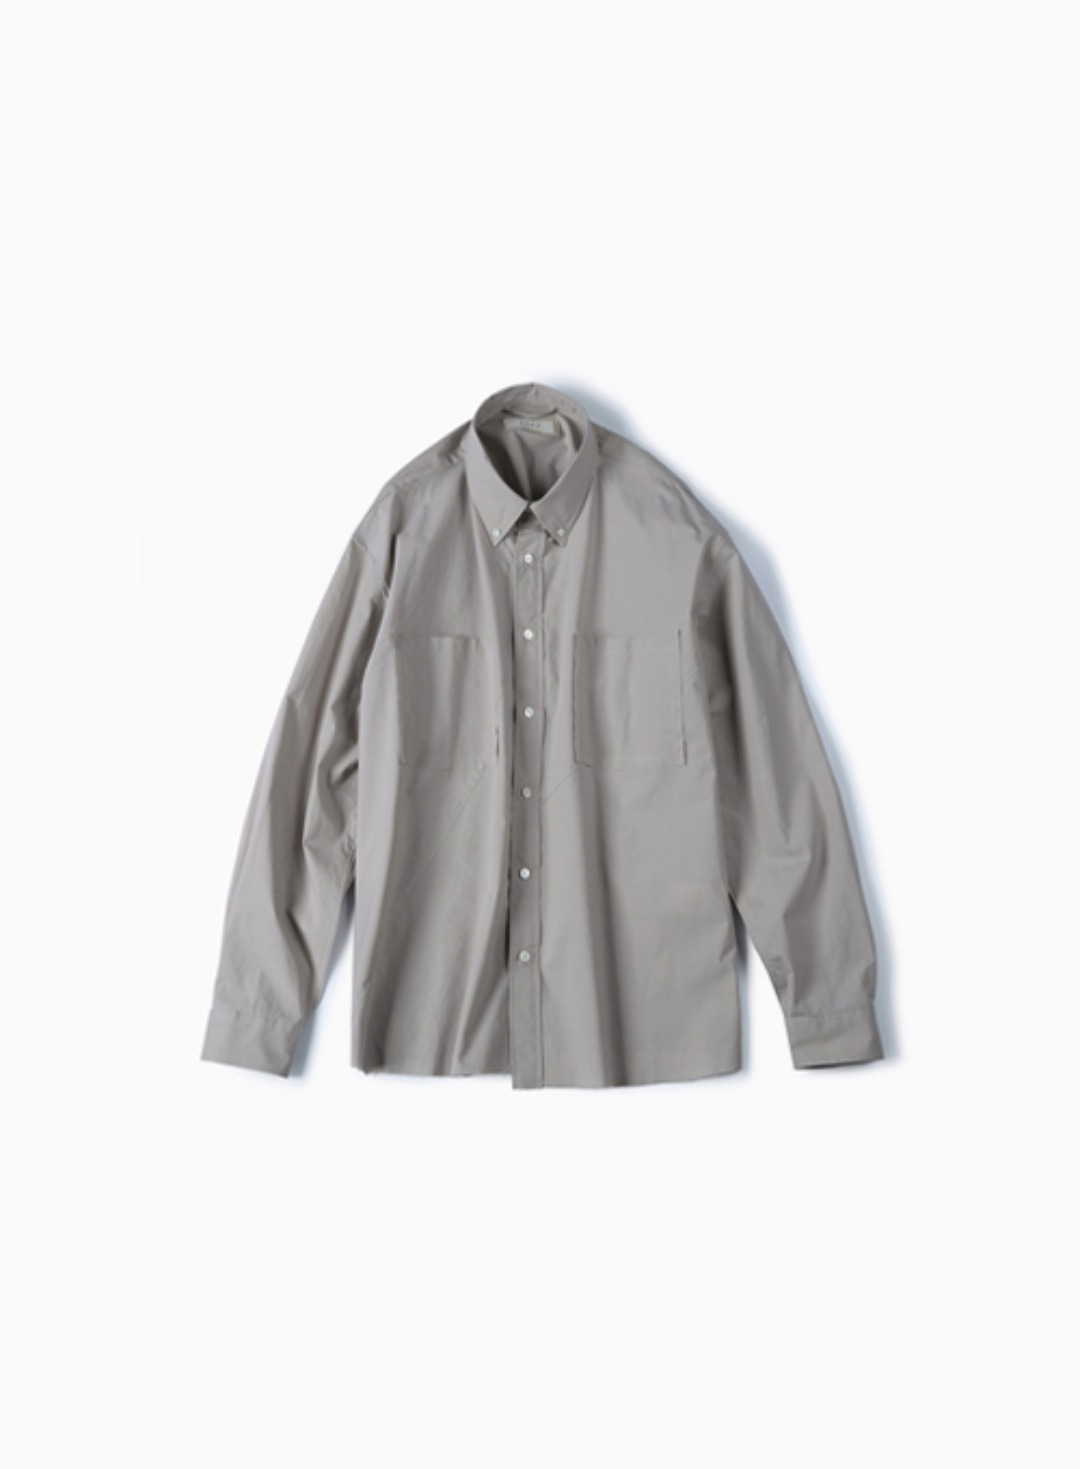 CUT OFF TWIST OVER SHIRT (REDDISH GREY)